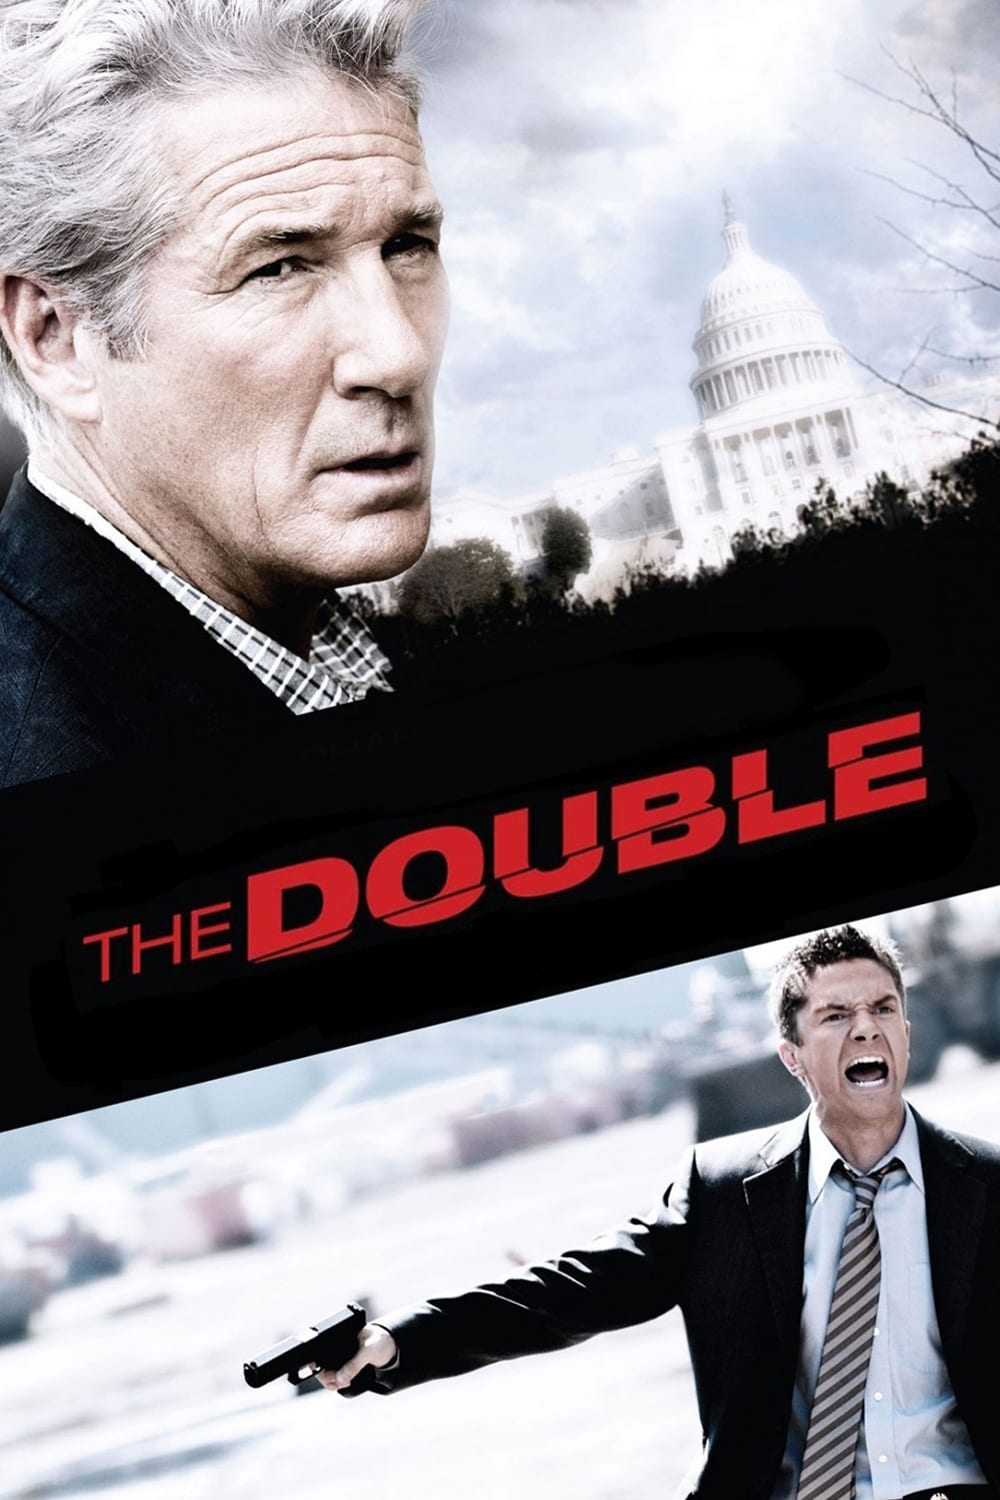 The Double